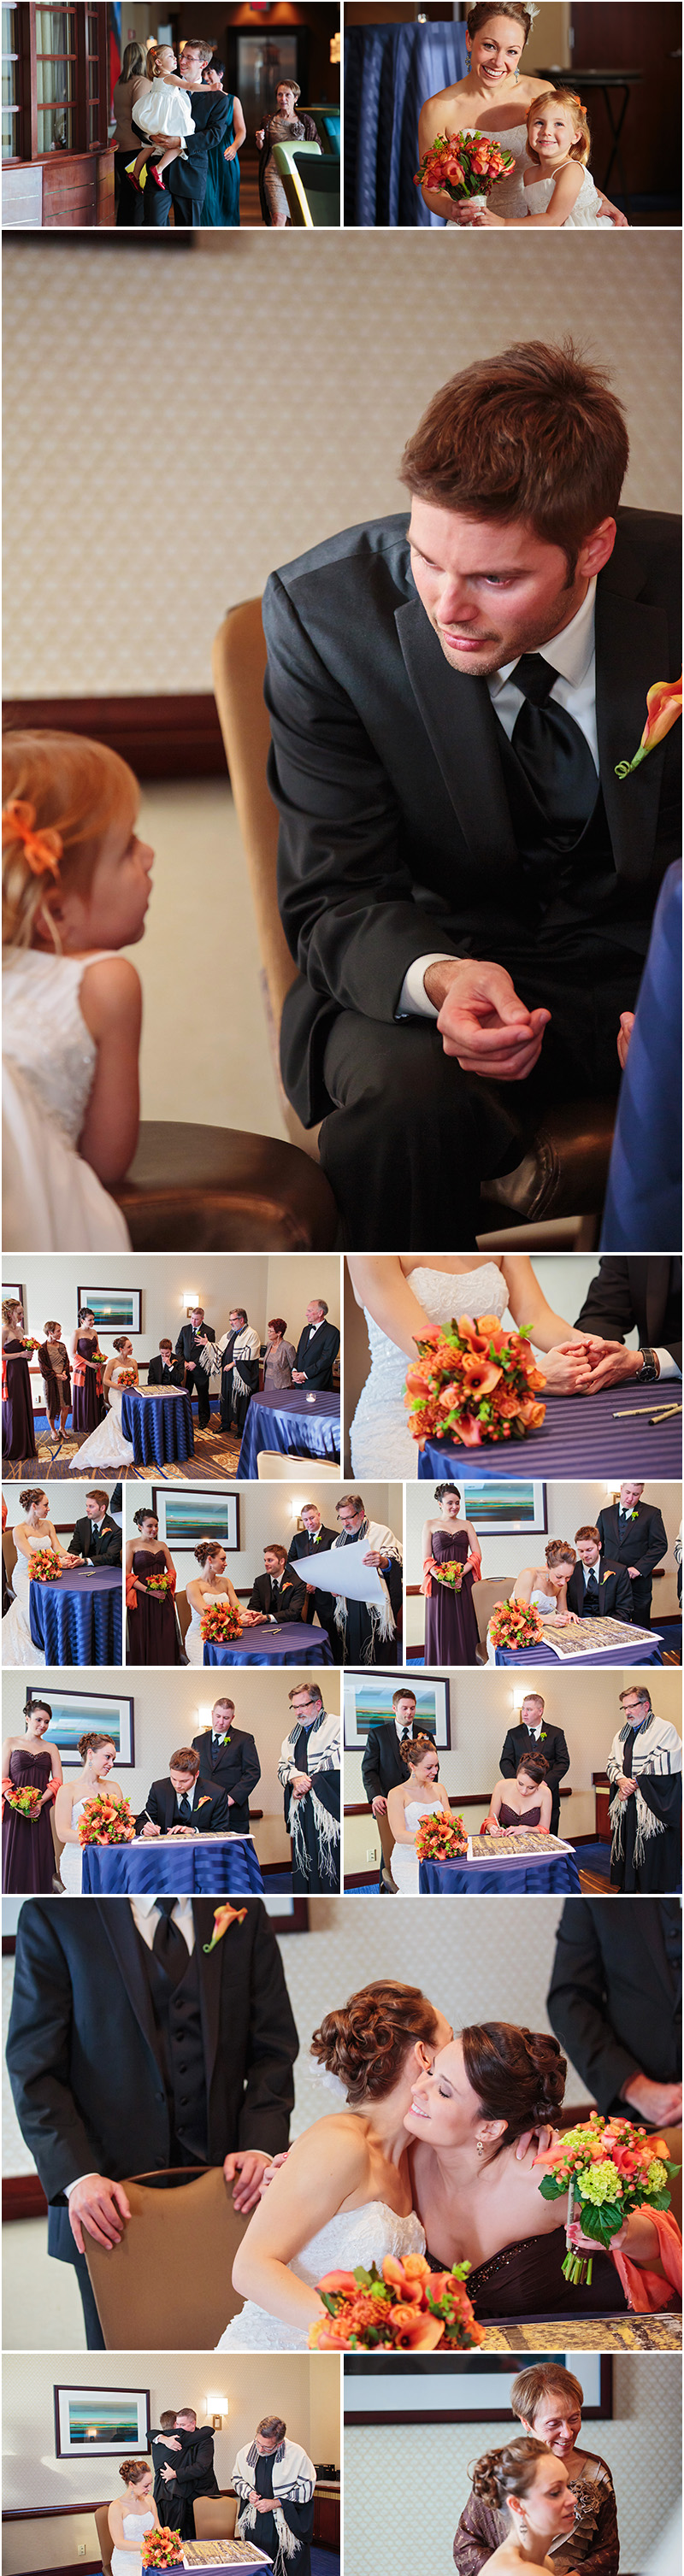 BOSTON WEDDING PHOTOGRAPHERS AT HYATT HARBORSIDE MA